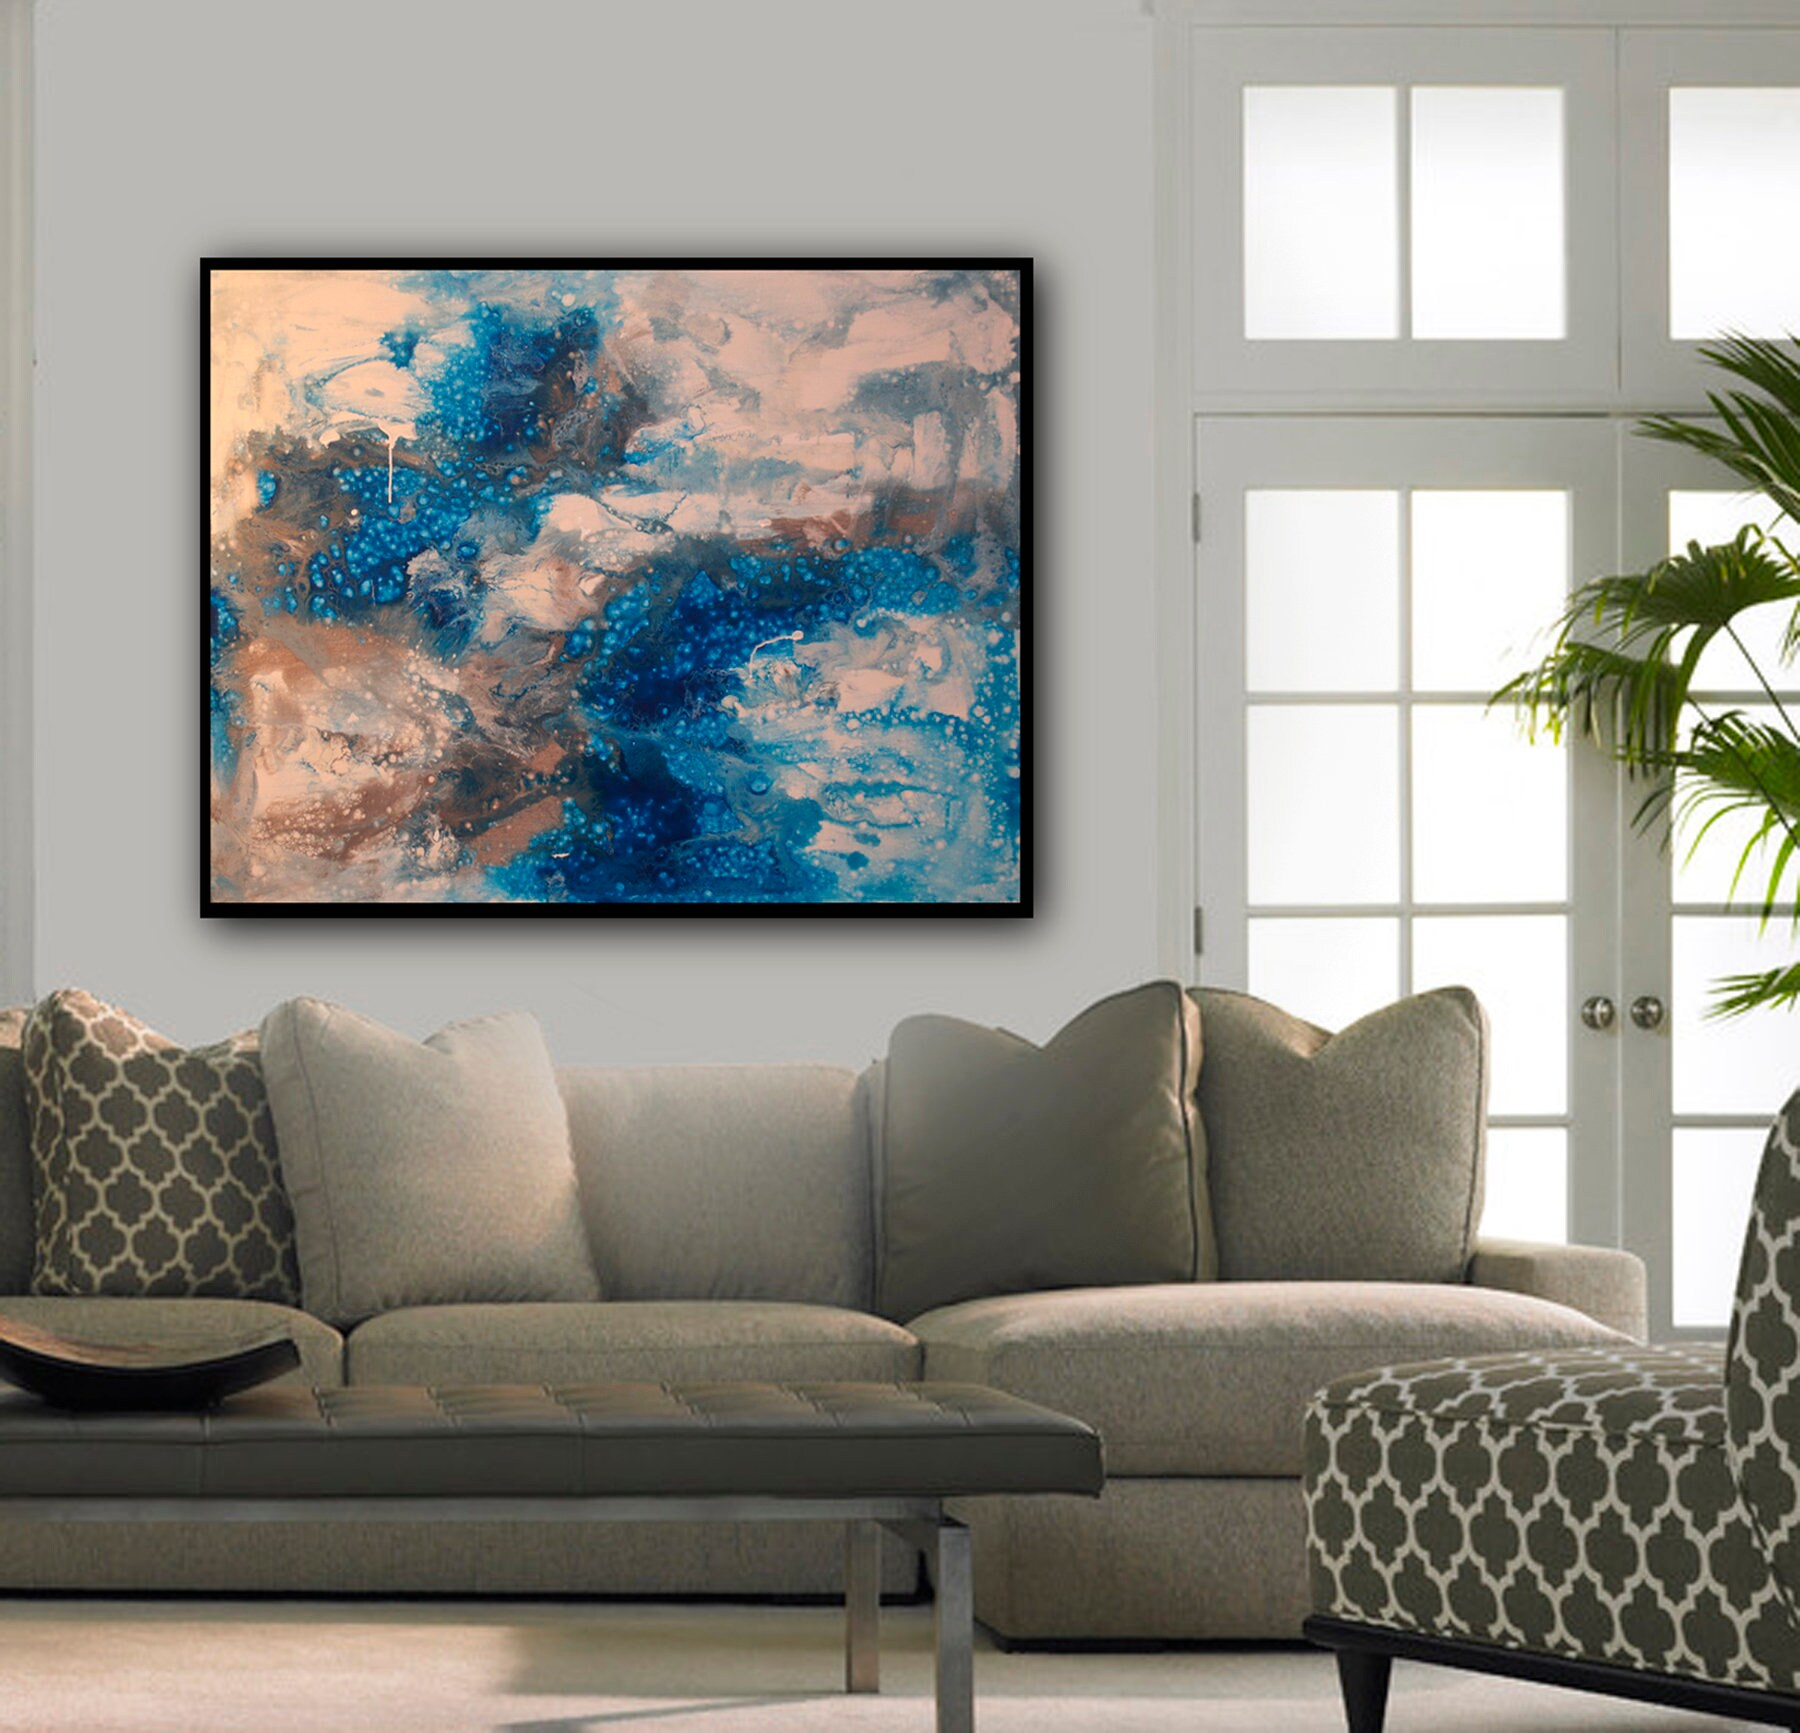 Original Large Modern Abstract Painting Liquid Fluid Wall Art Deco